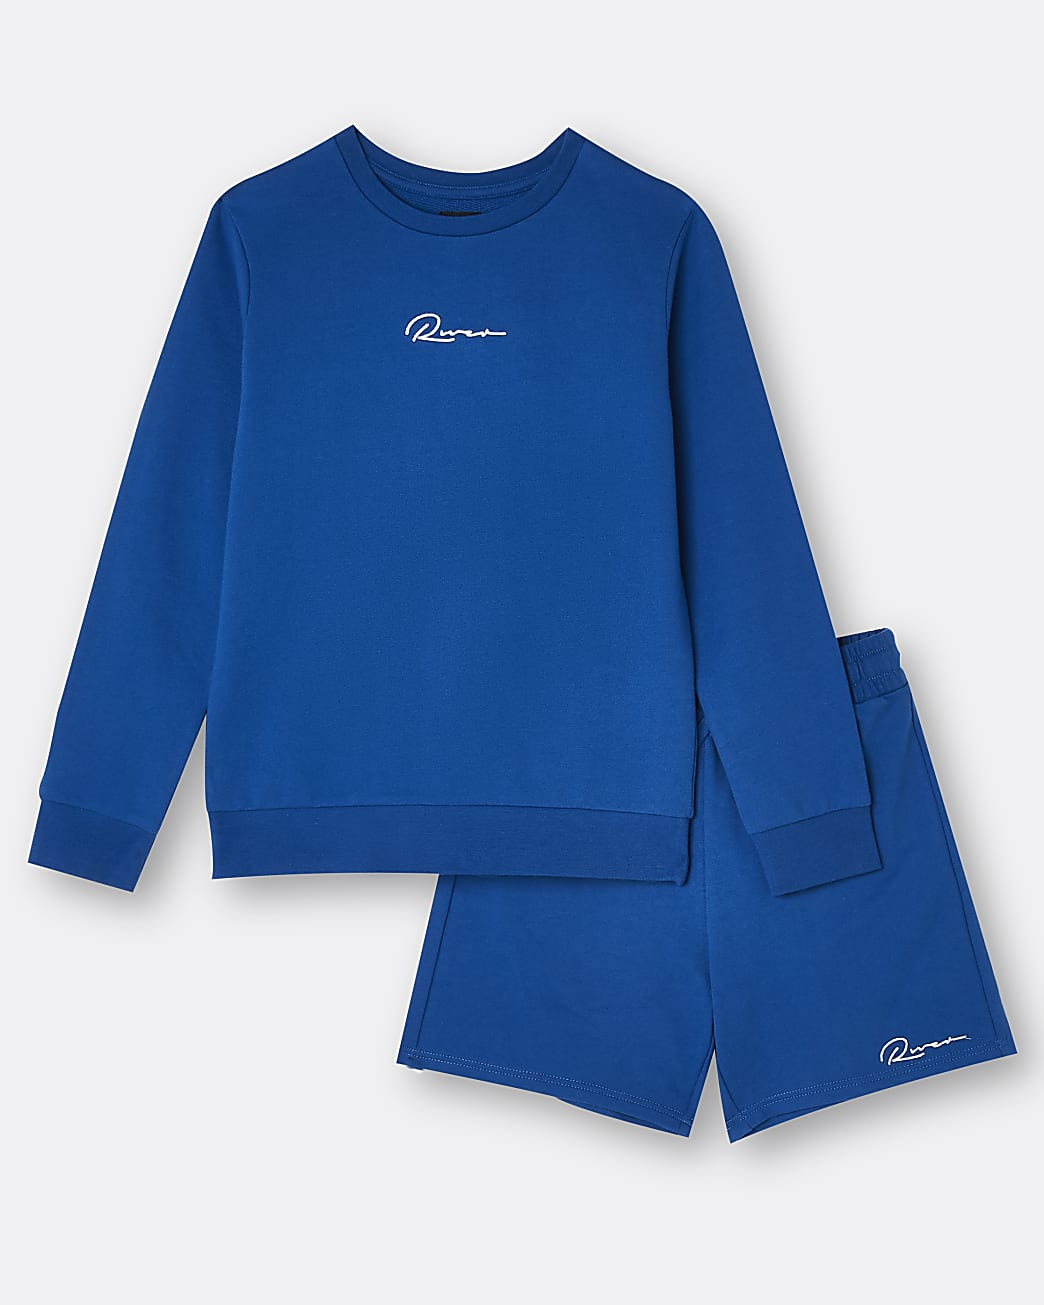 Boys blue River sweatshirt and shorts outfit